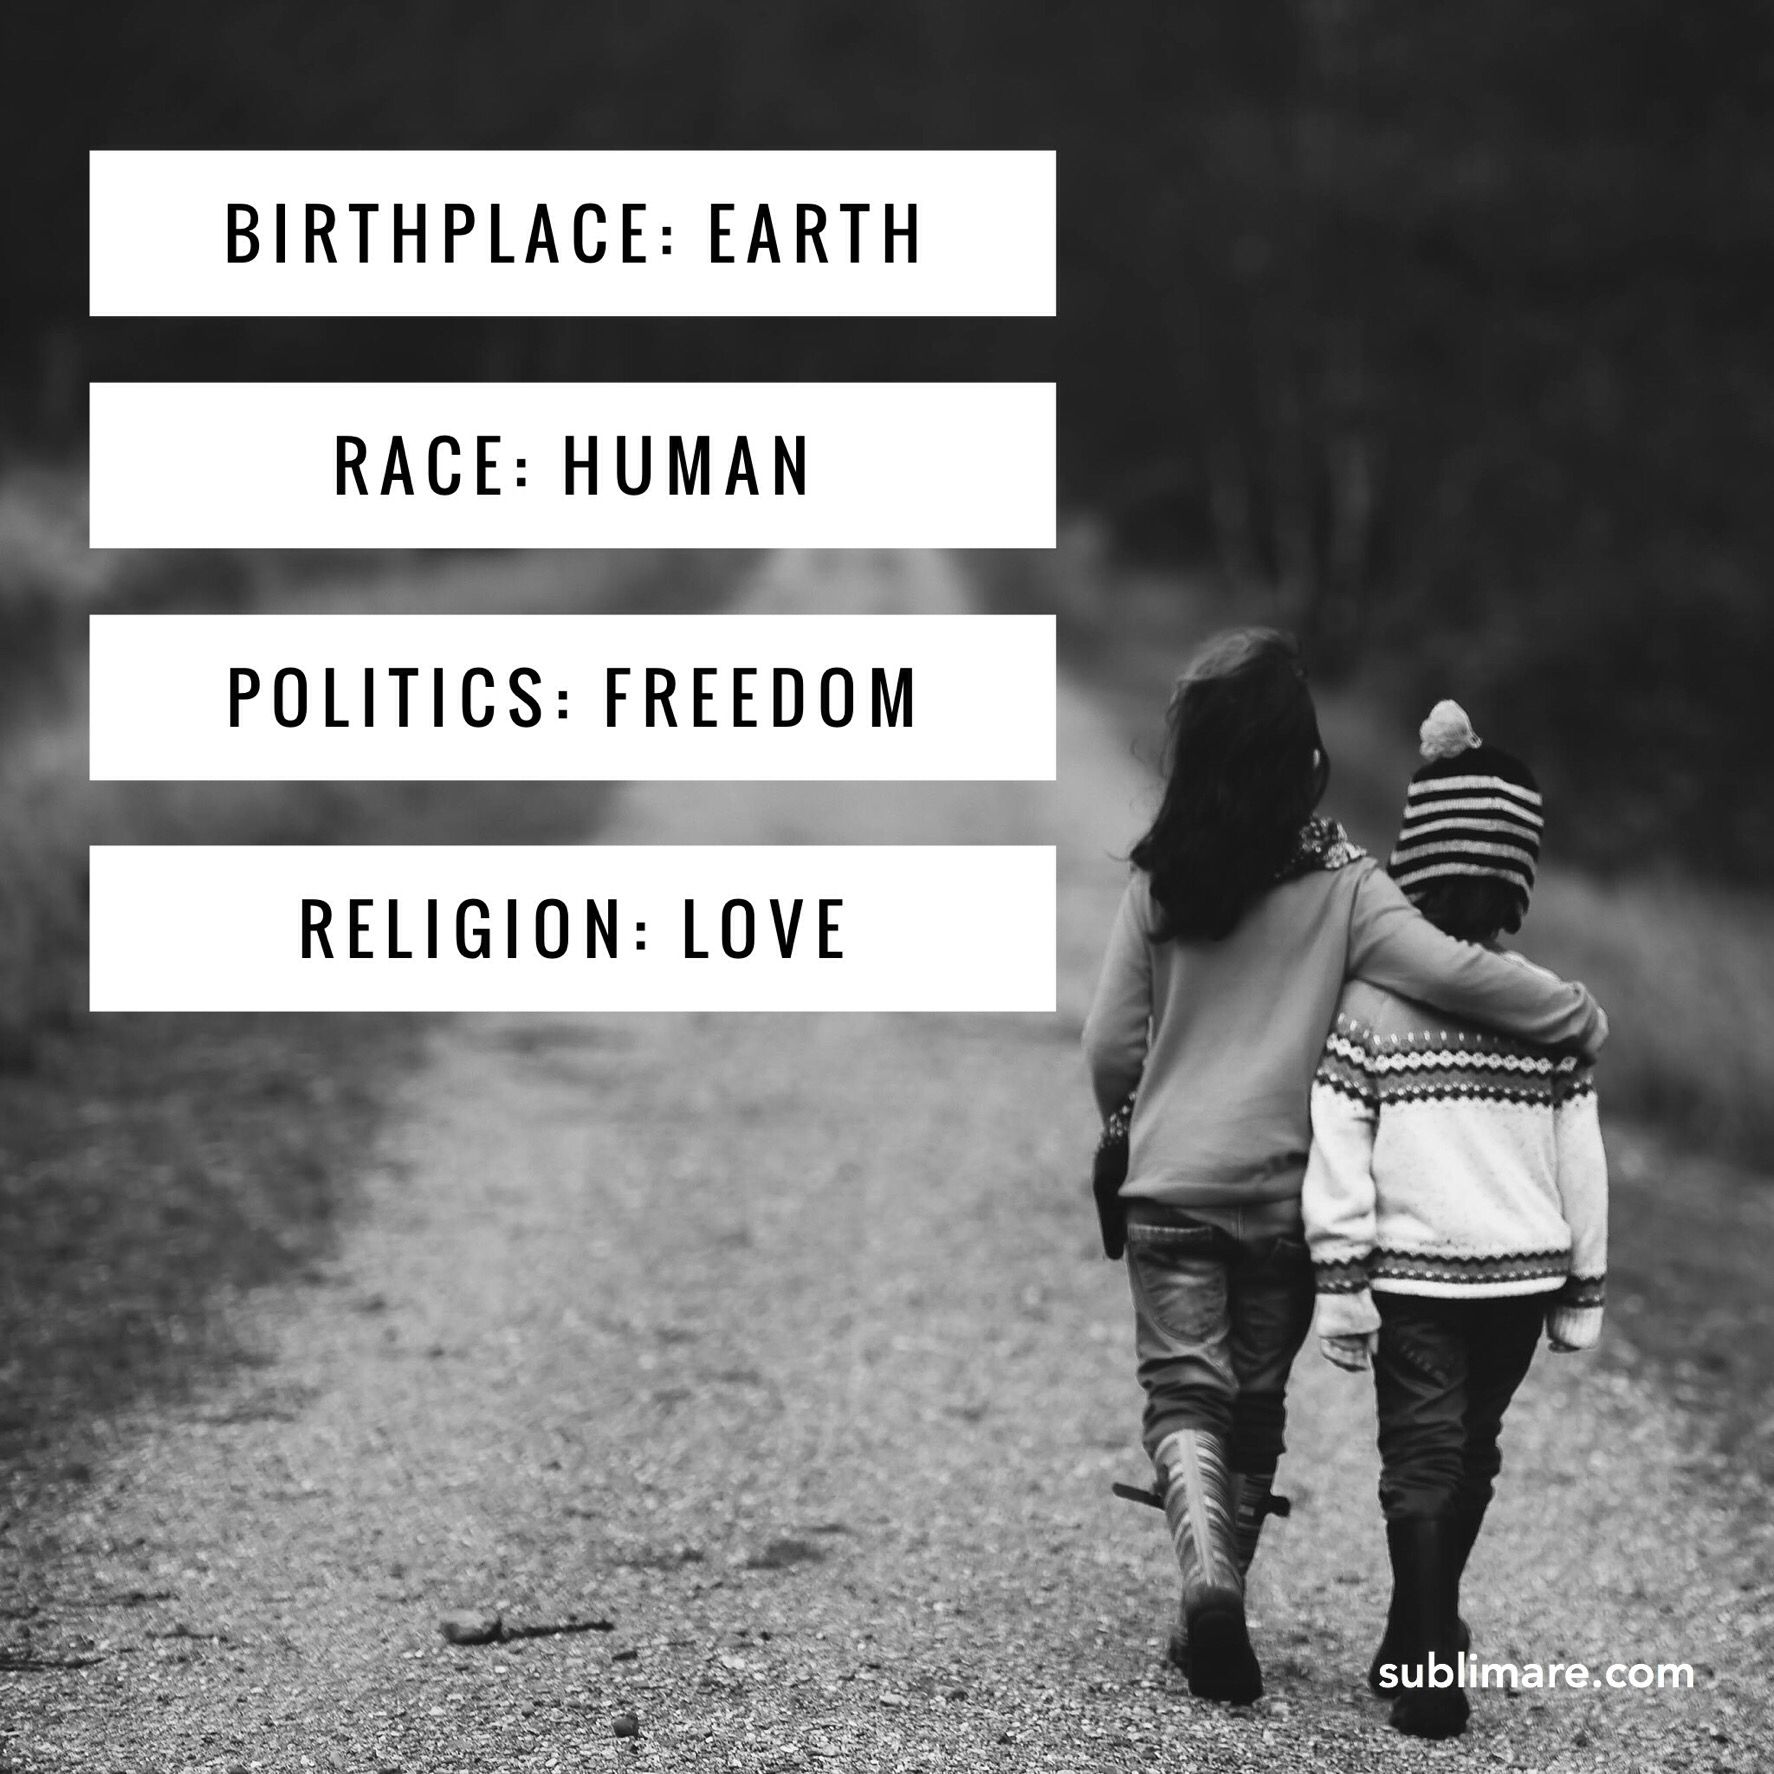 race religious rights america The most sweeping civil rights legislation since reconstruction, the civil rights act prohibited discrimination of all kinds based on race, color, religion or national origin and transform american society.